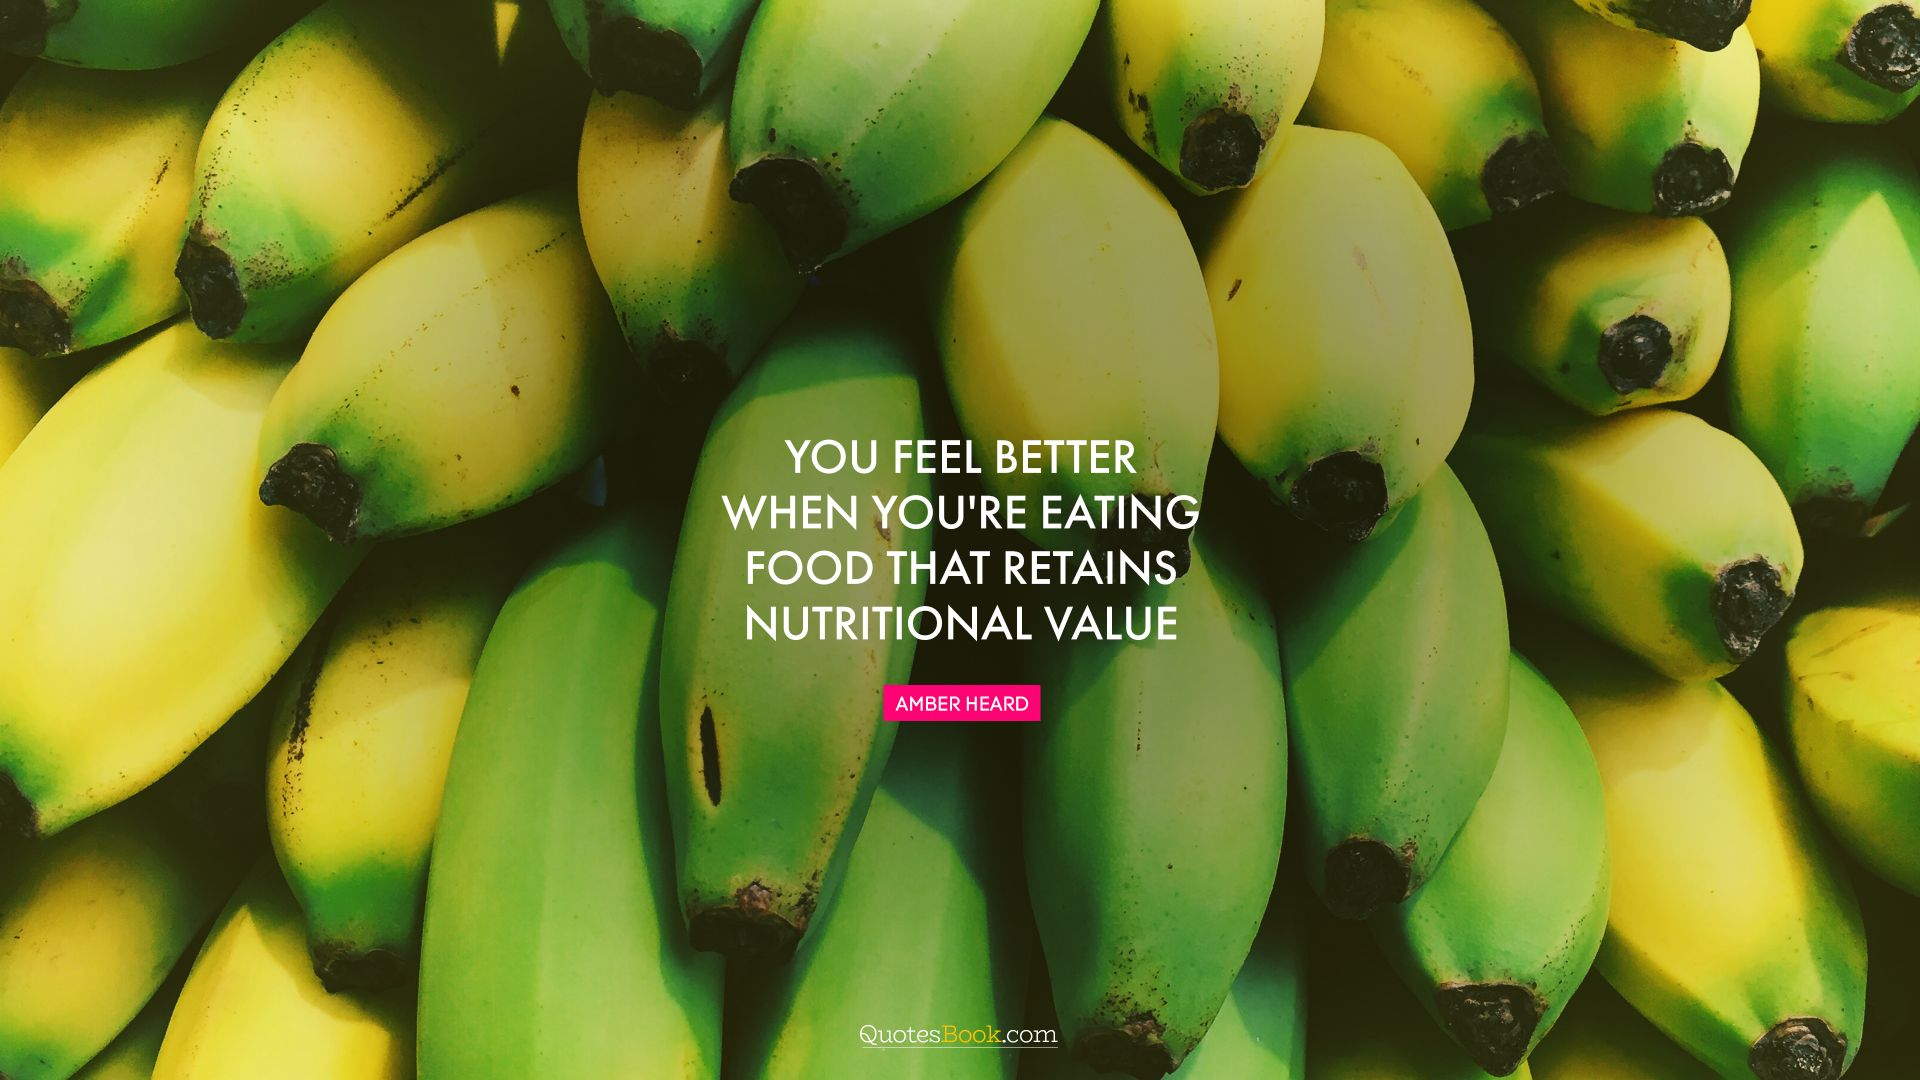 You feel better when you're eating food that retains nutritional value. - Quote by Amber Heard